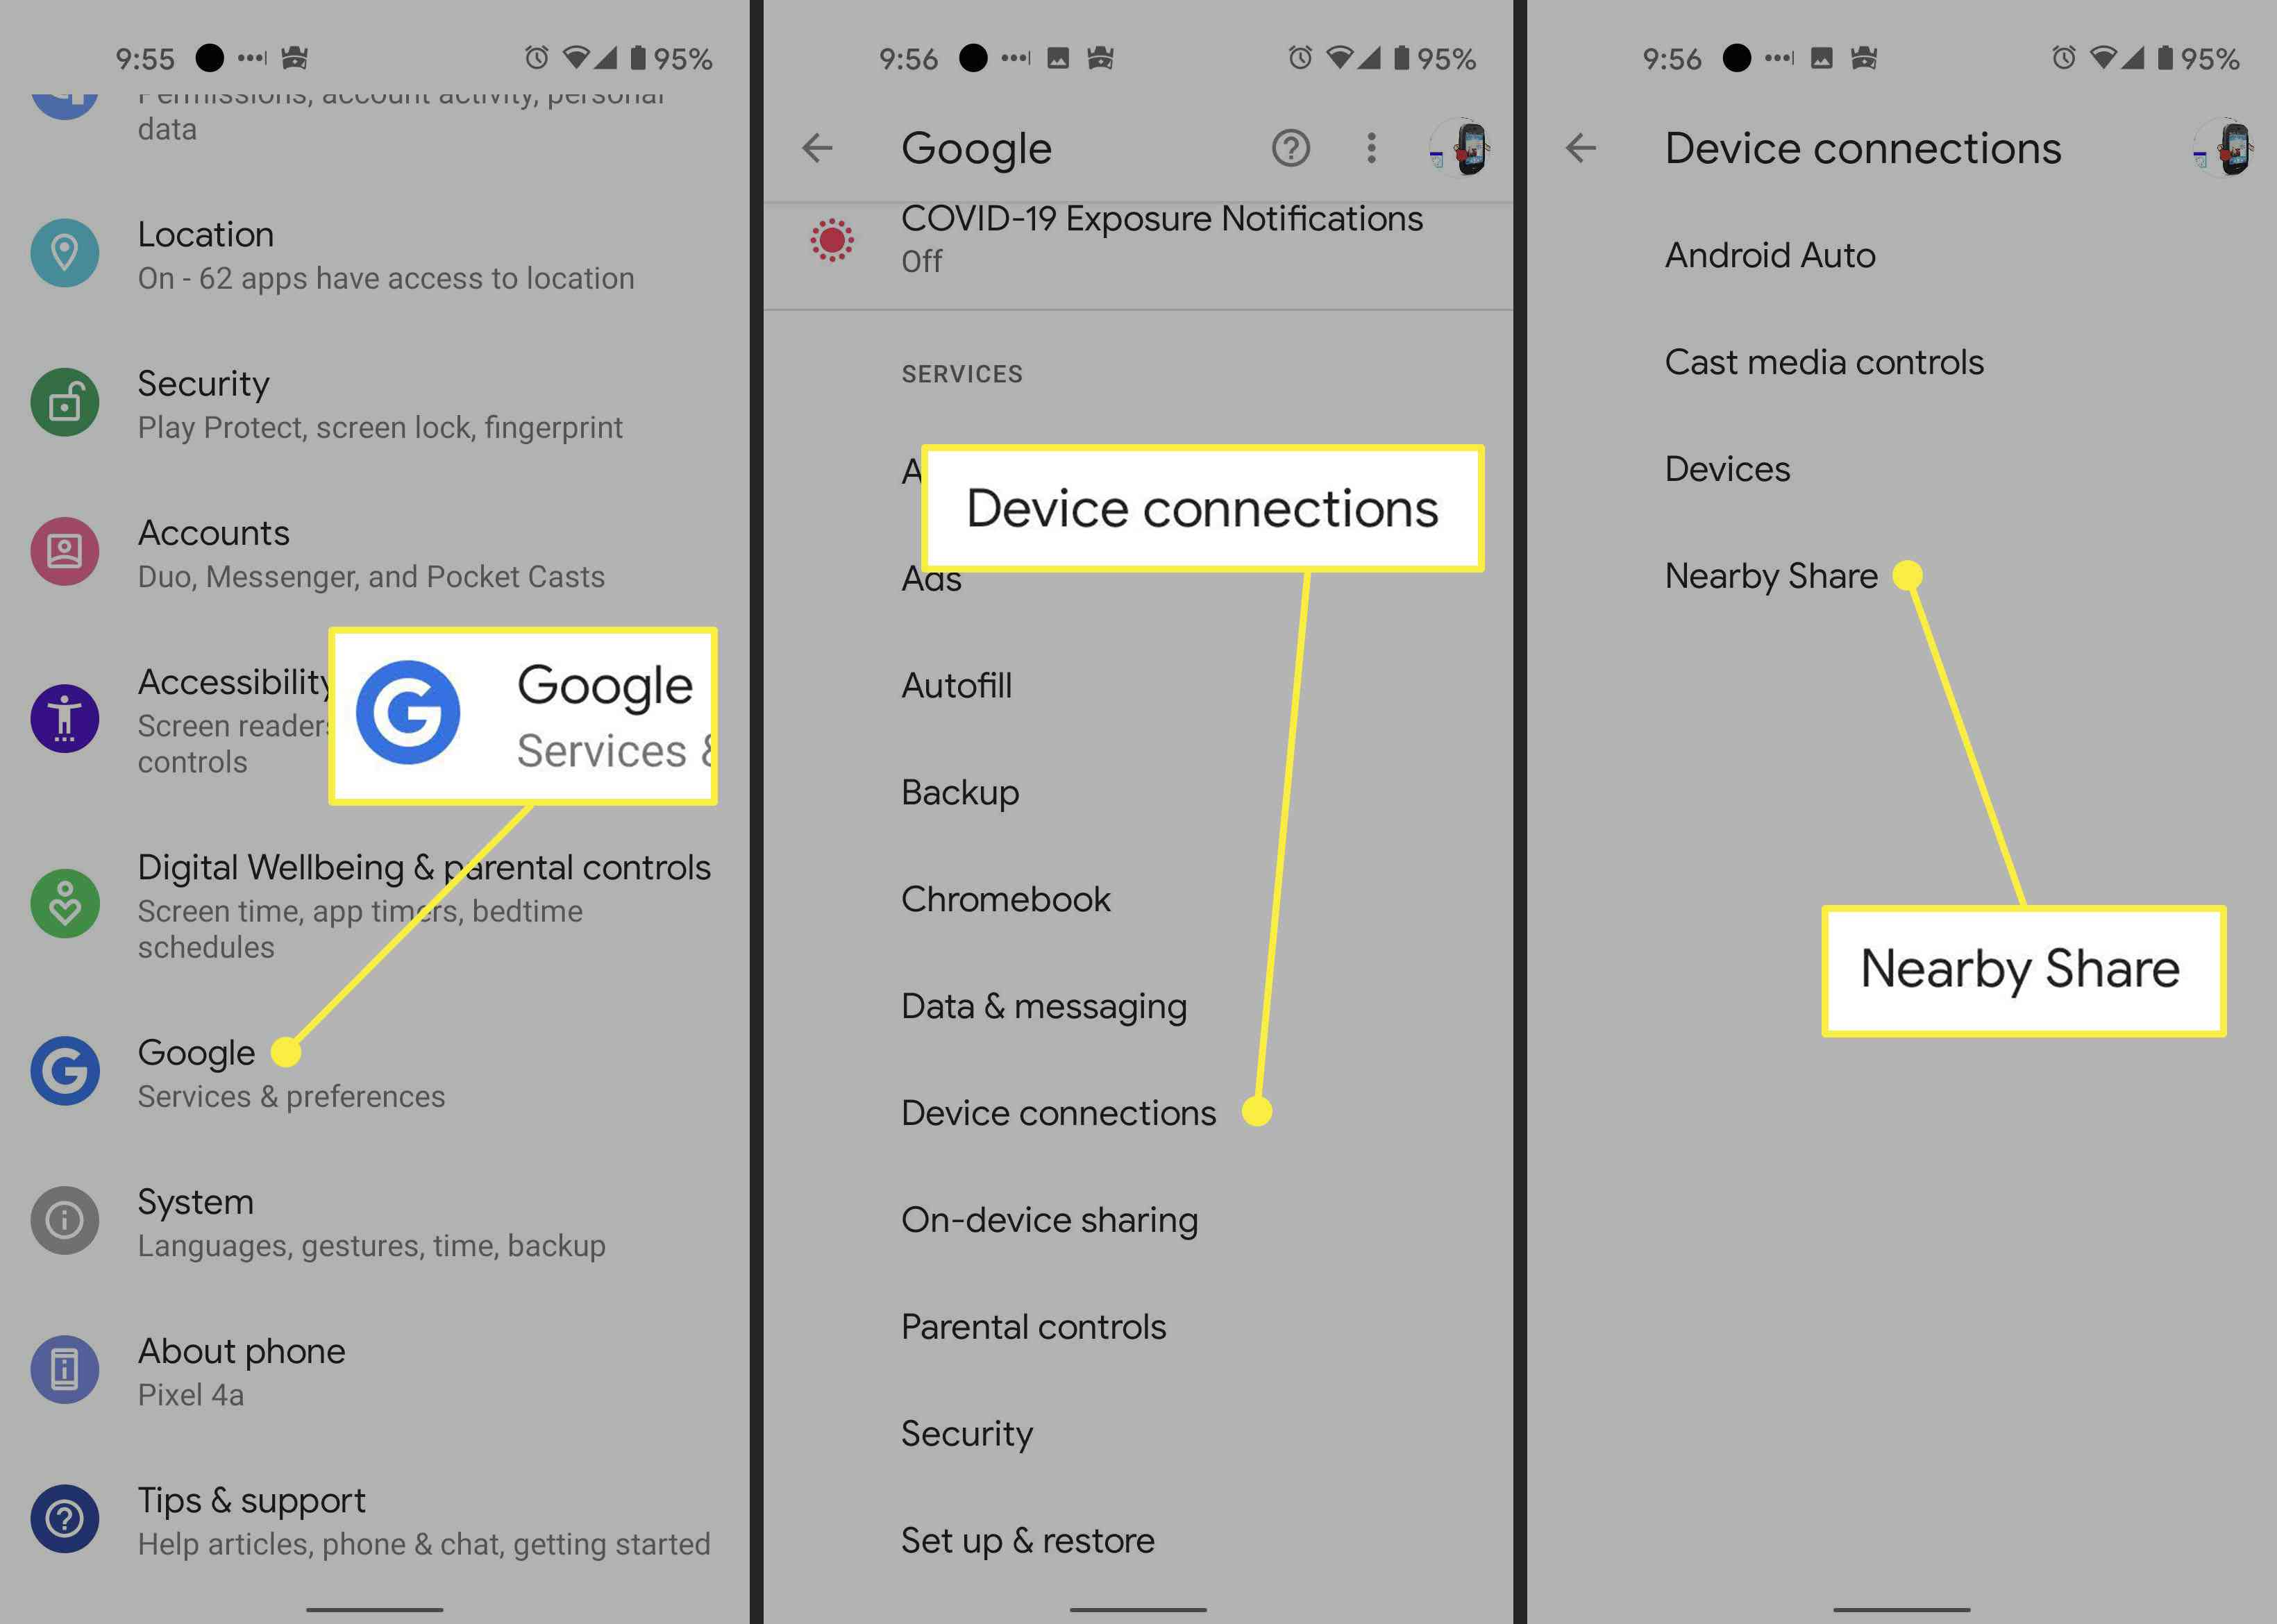 Steps to take to find folks to share files with in Android Nearby Share feature.